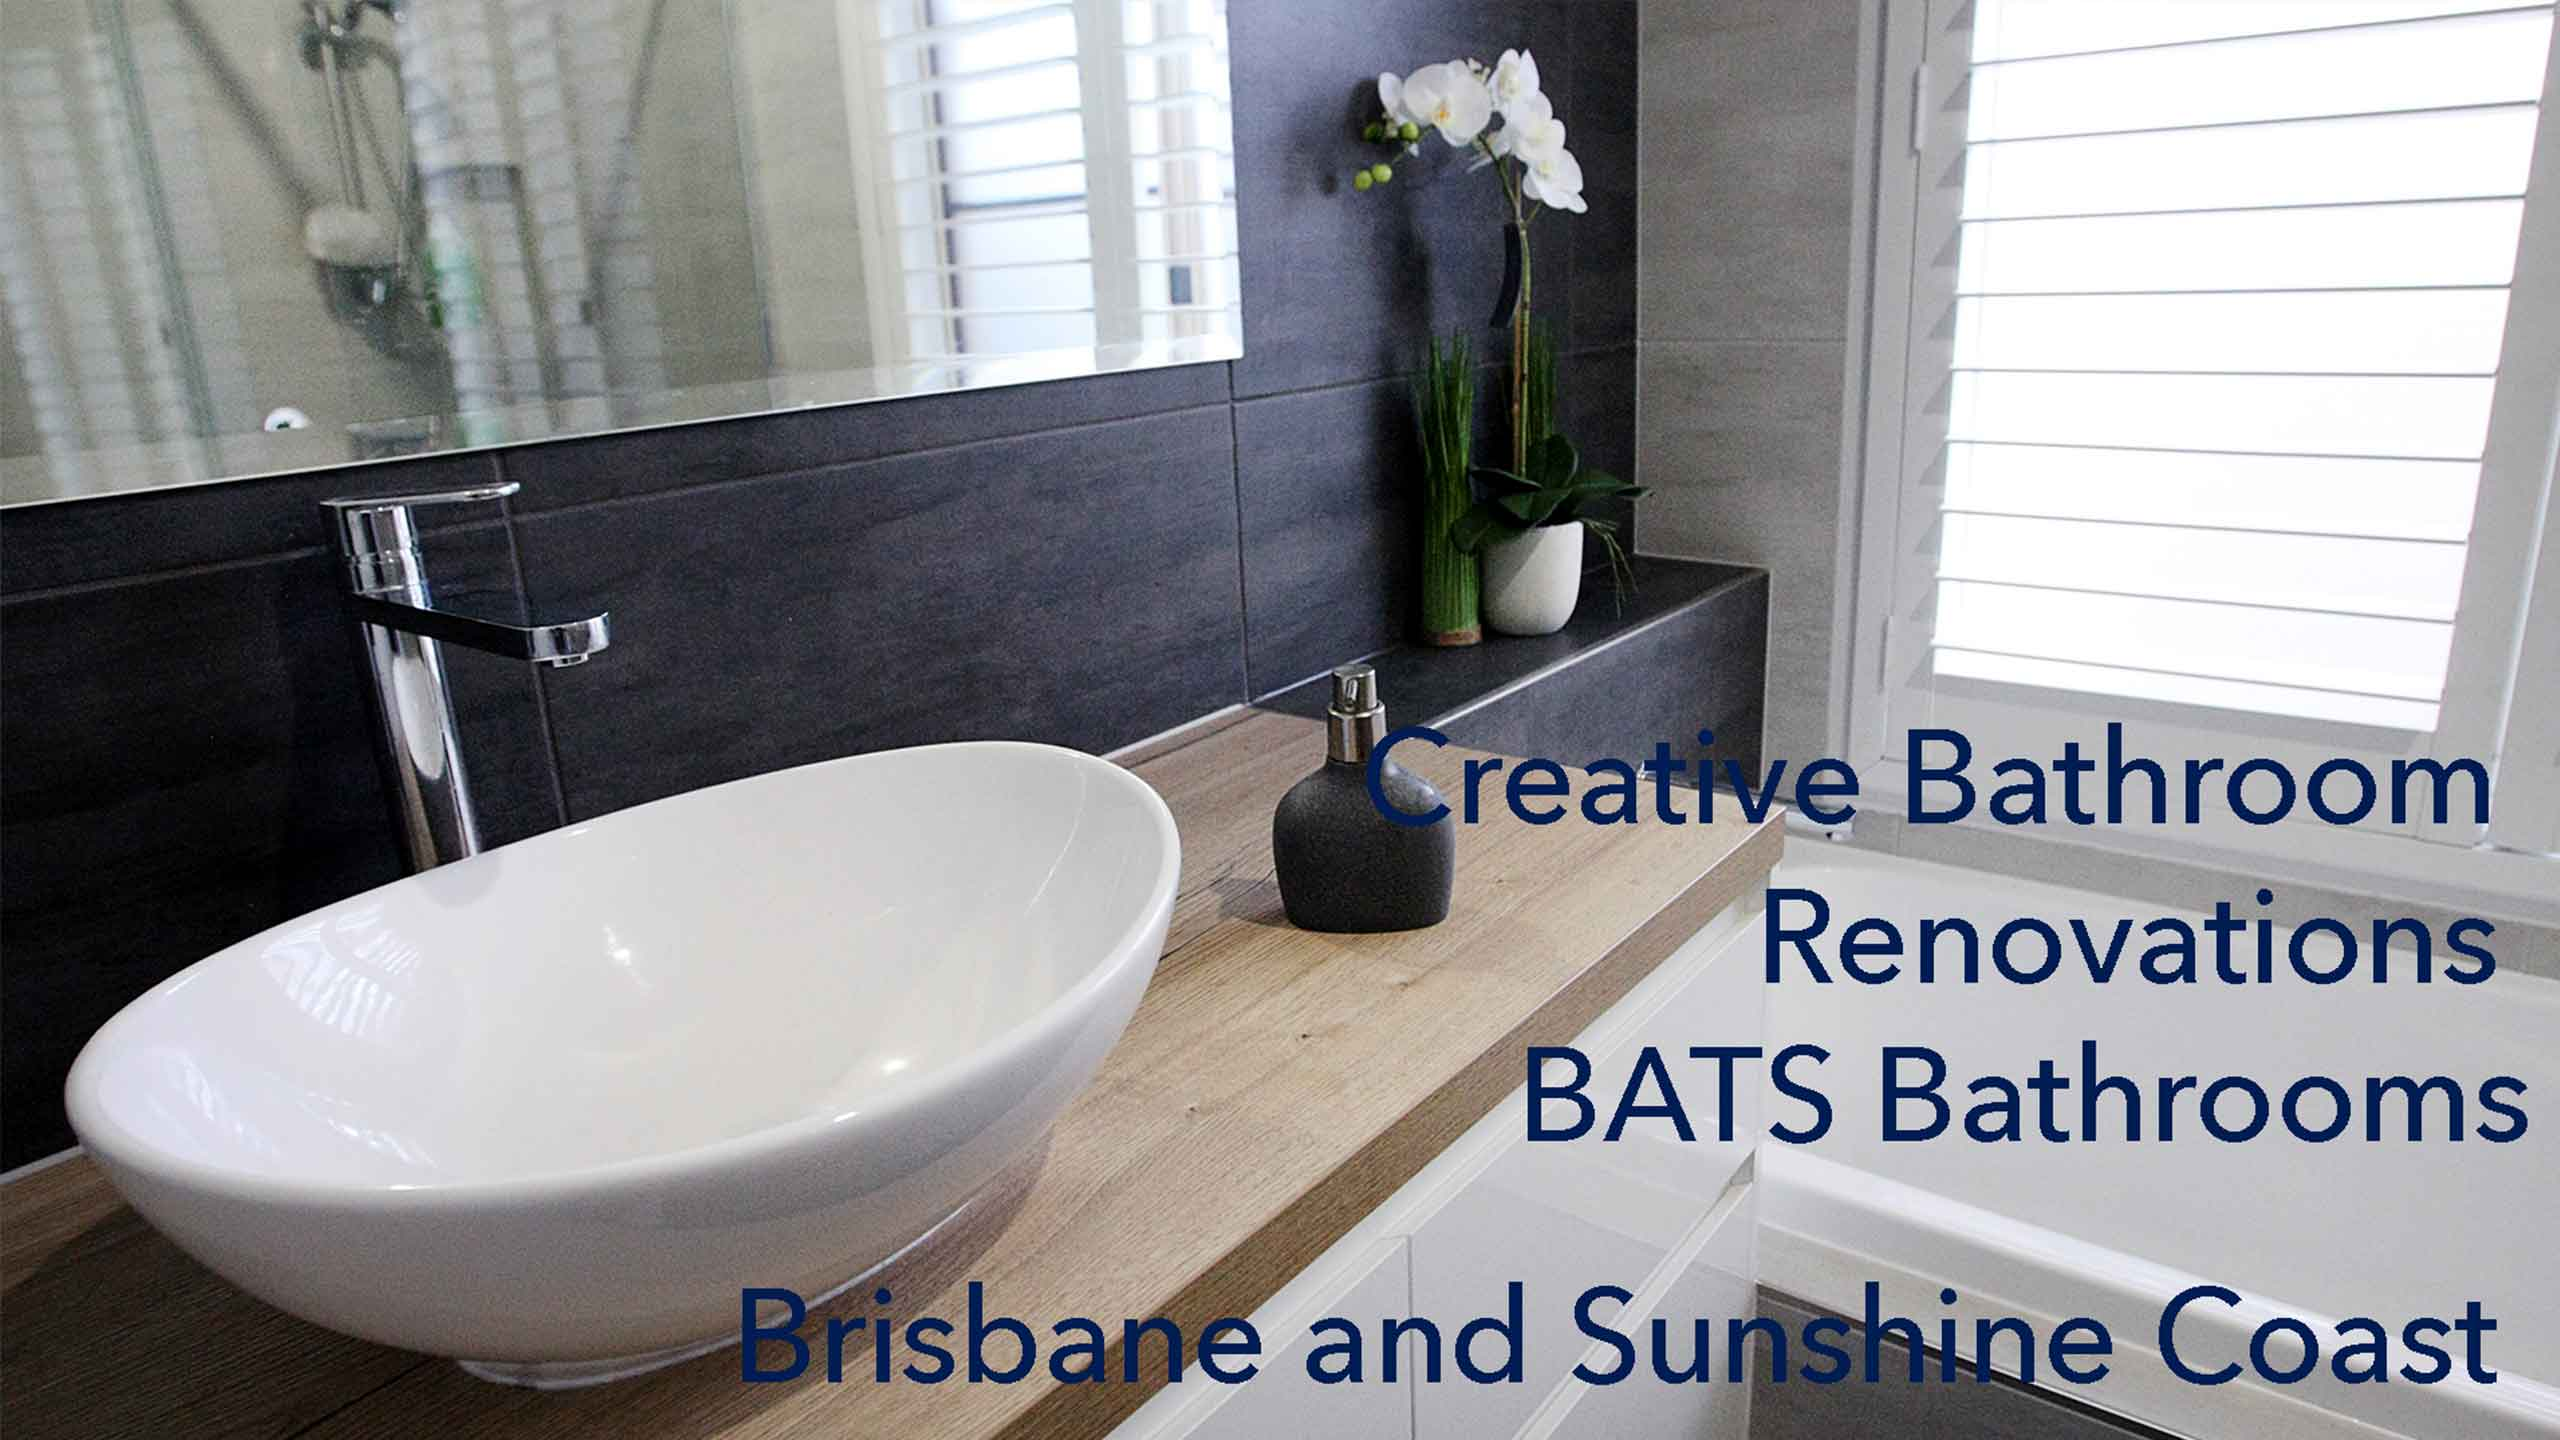 Bathroom Renovation Videos BATS Bathrooms The Brisbane Specialists - Bathroom renovation videos